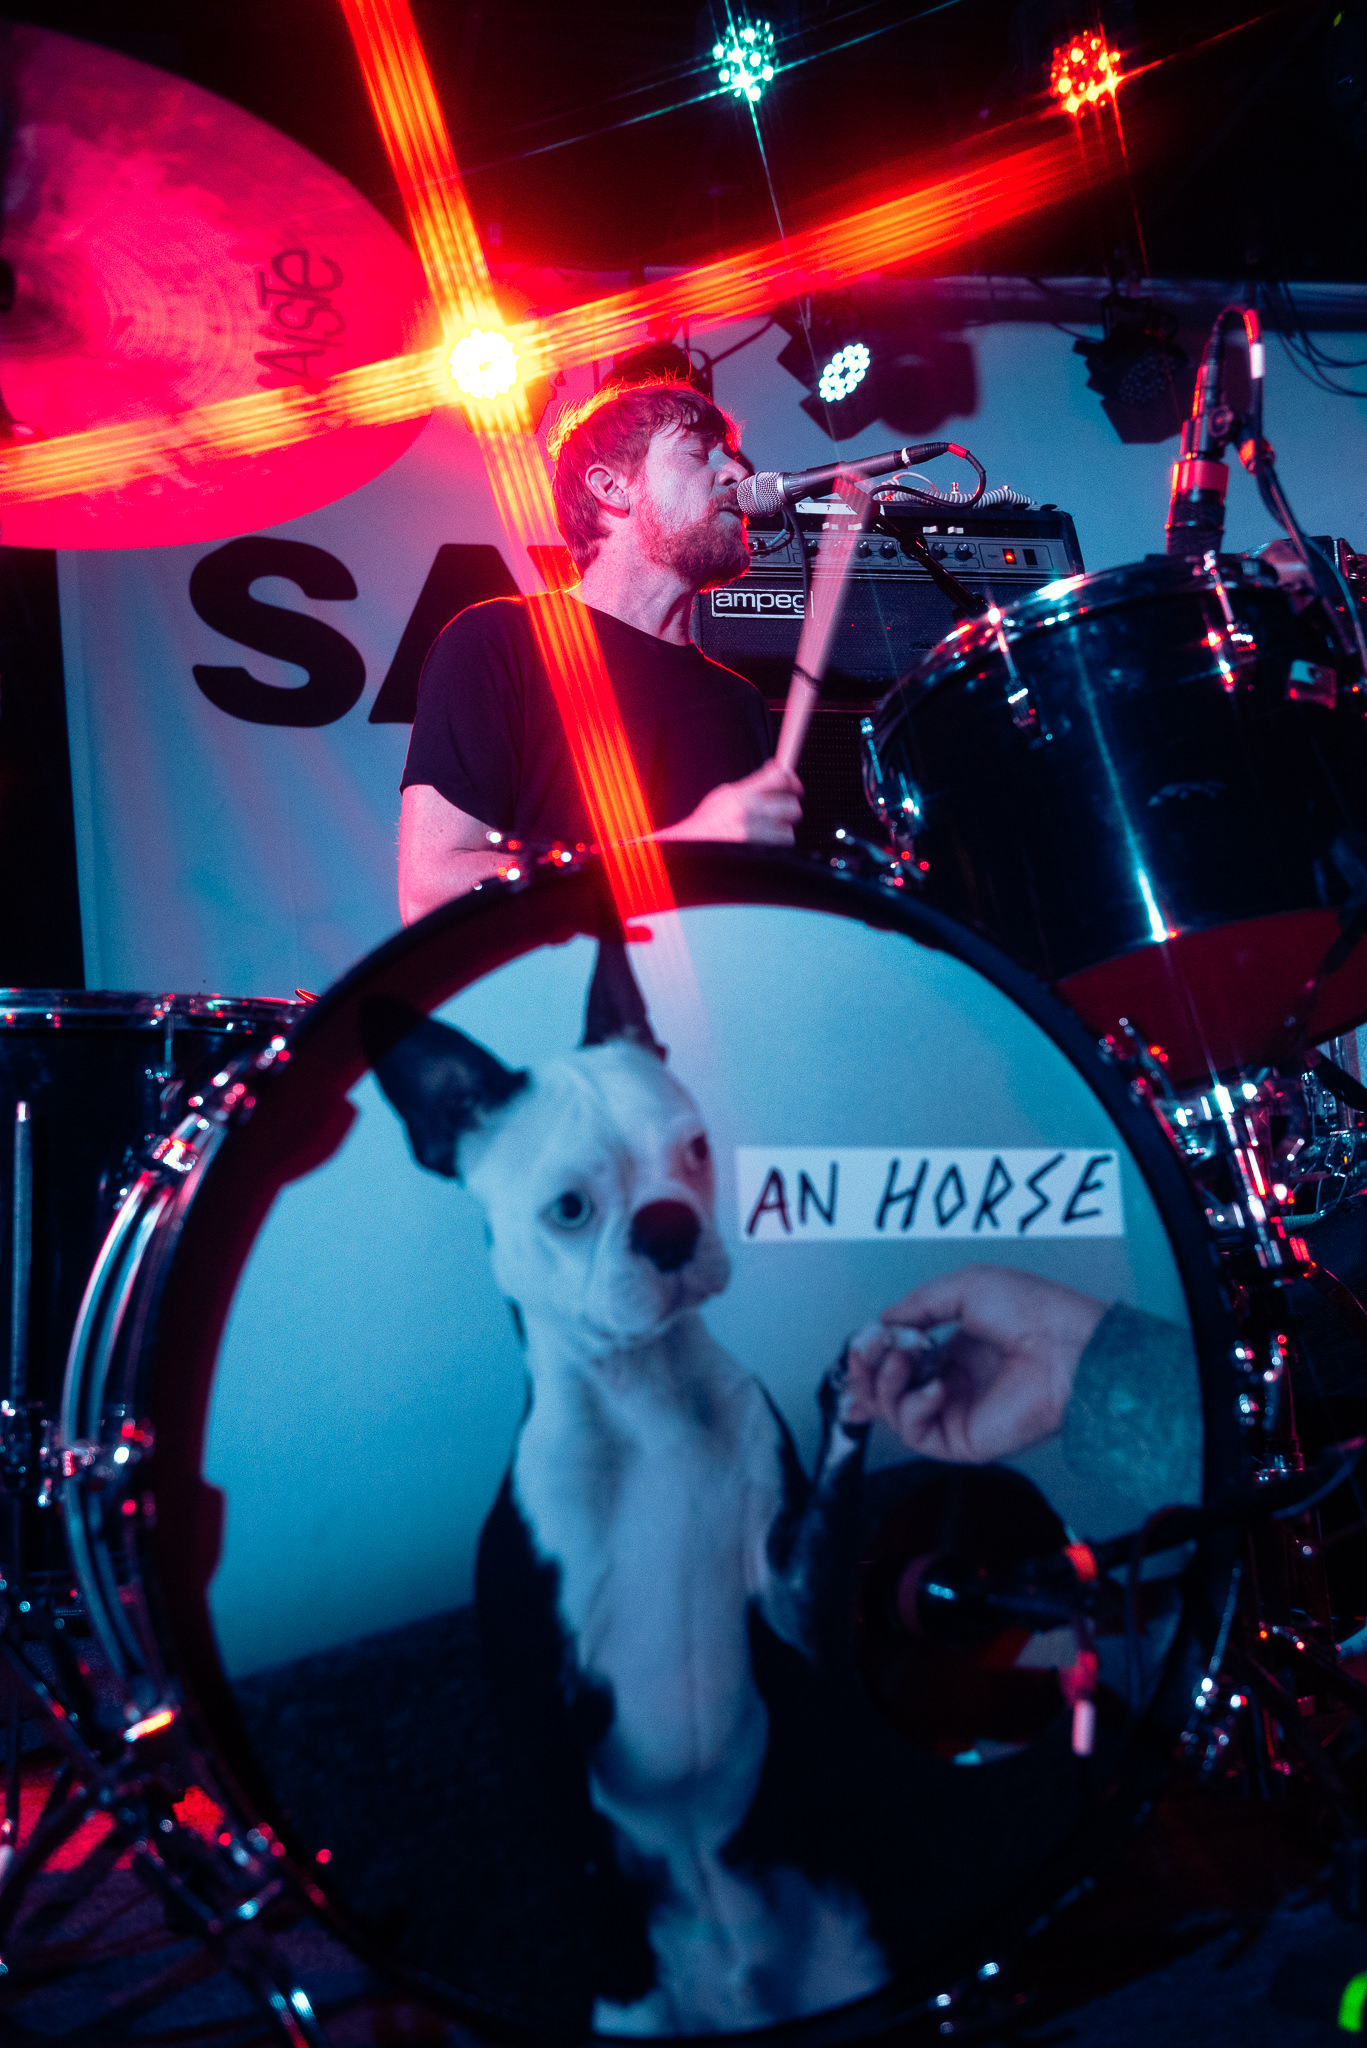 An Horse The Stone Pony Stars and Scars Photo